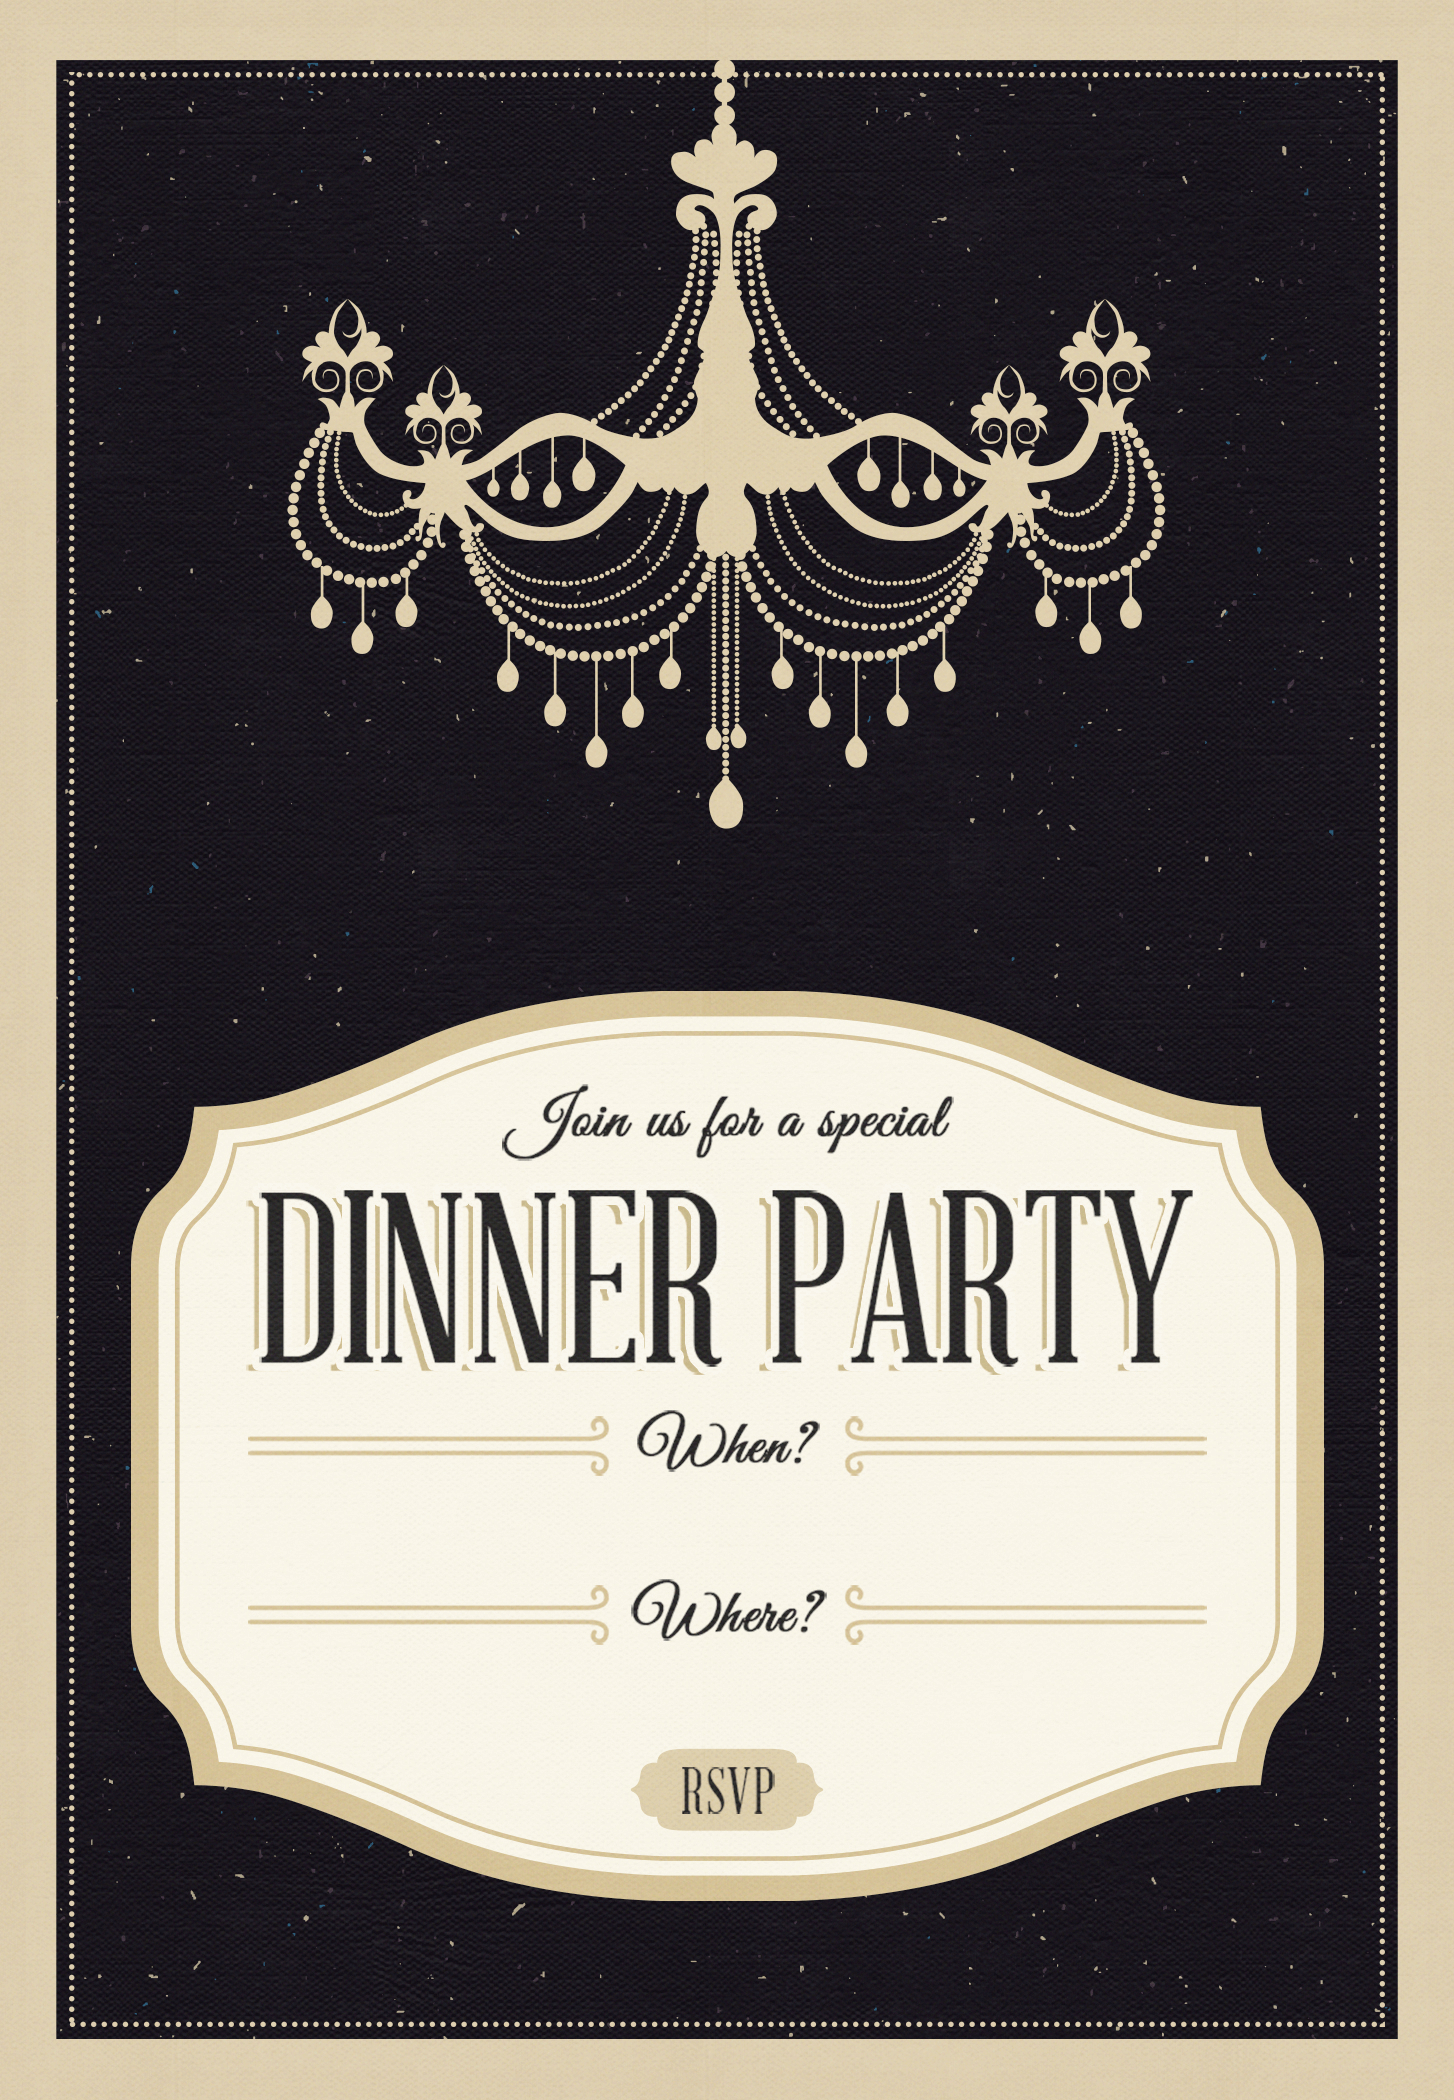 Classy Chandelier - Free Printable Dinner Party Invitation Template - Free Printable Chandelier Template